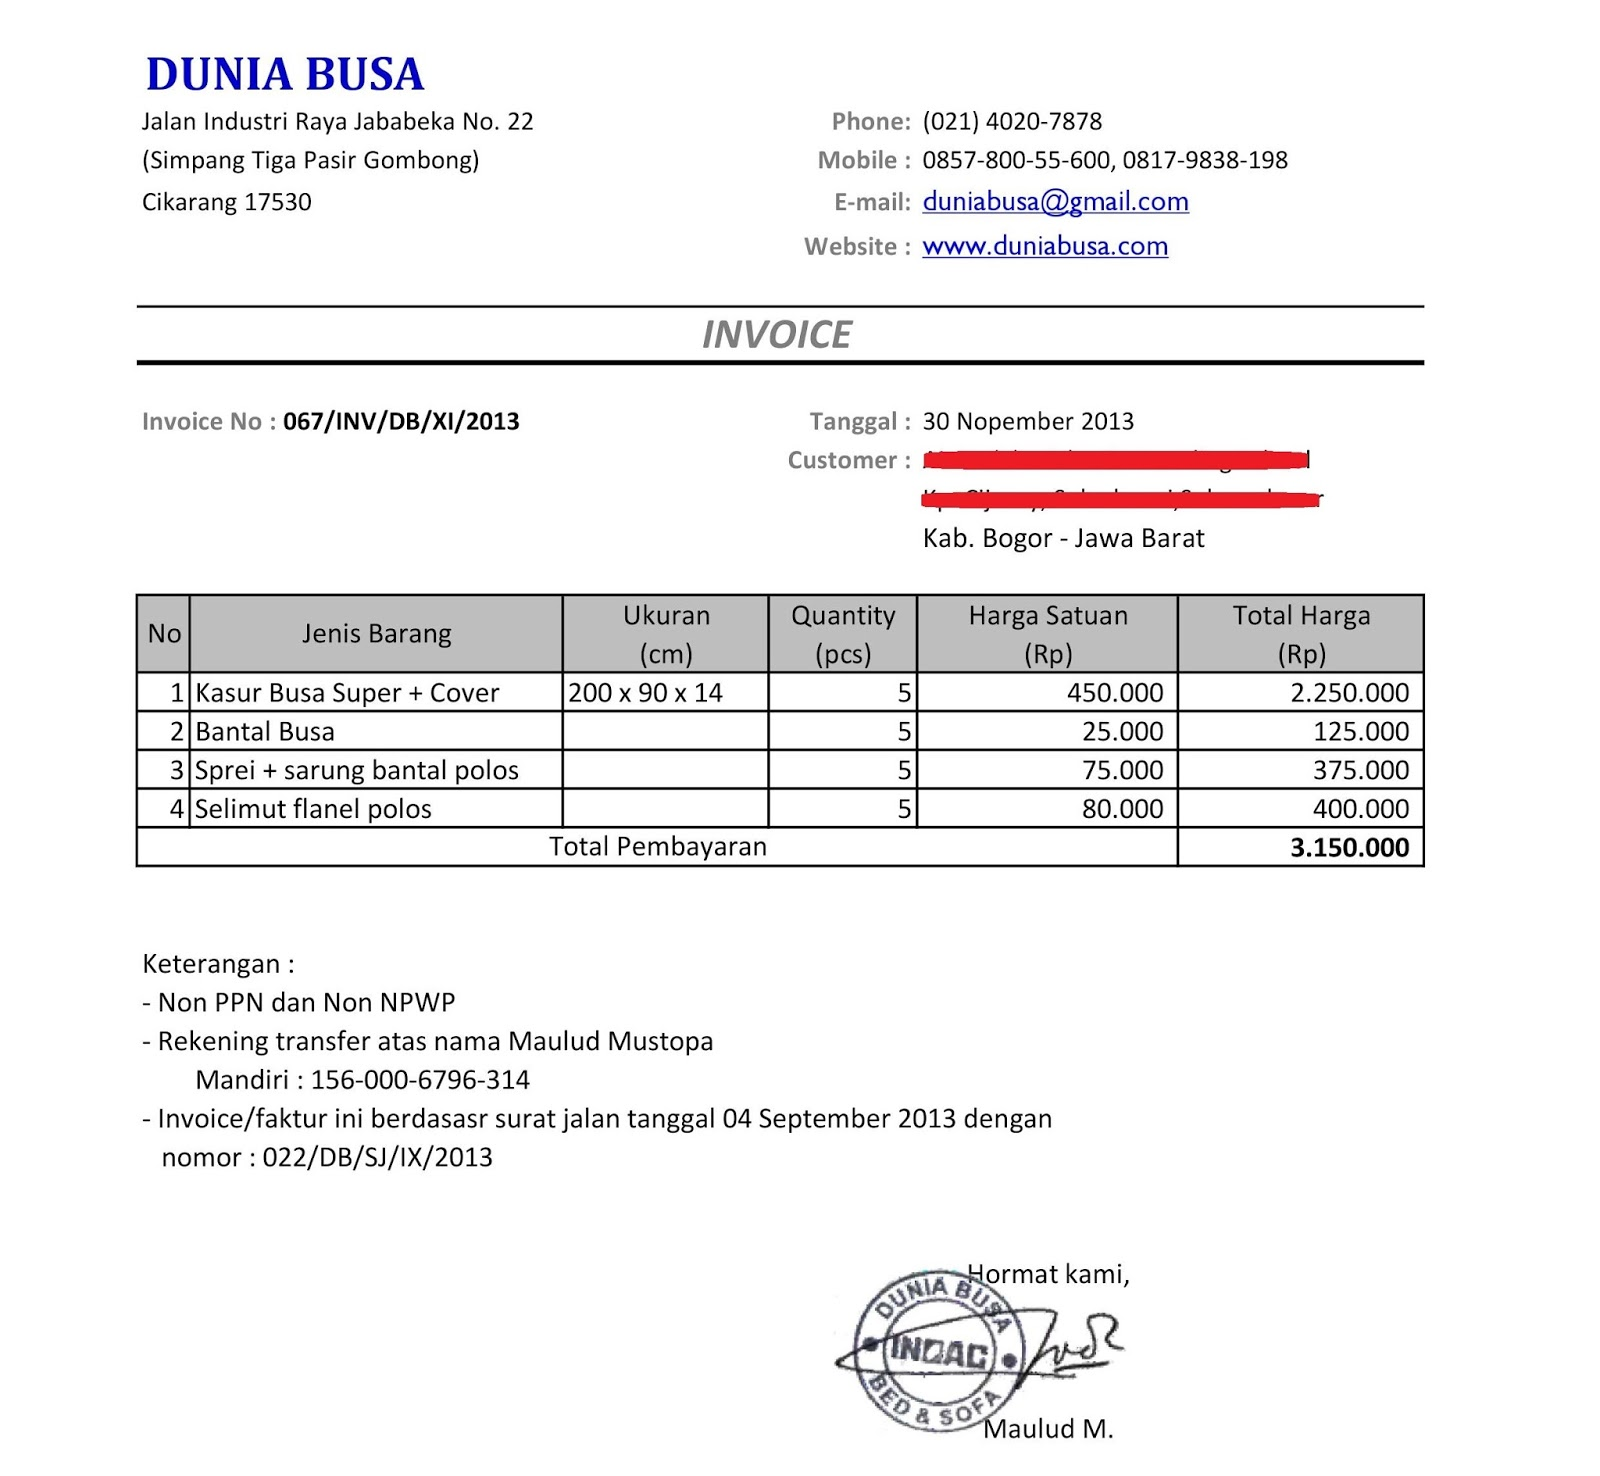 Centralasianshepherdus  Splendid Free Invoice Online  Create Invoice Online  Invoice Template  With Fair Contoh Format Invoice Atau Surat Tagihan  Brankas Arsip  Free Invoice Online With Nice Carbonless Invoice Printing Also Sample Pro Forma Invoice In Addition Us Customs Invoice Form And Pro Foma Invoice As Well As Net  On Invoice Additionally Meaning Of Sales Invoice From Sklepco With Centralasianshepherdus  Fair Free Invoice Online  Create Invoice Online  Invoice Template  With Nice Contoh Format Invoice Atau Surat Tagihan  Brankas Arsip  Free Invoice Online And Splendid Carbonless Invoice Printing Also Sample Pro Forma Invoice In Addition Us Customs Invoice Form From Sklepco